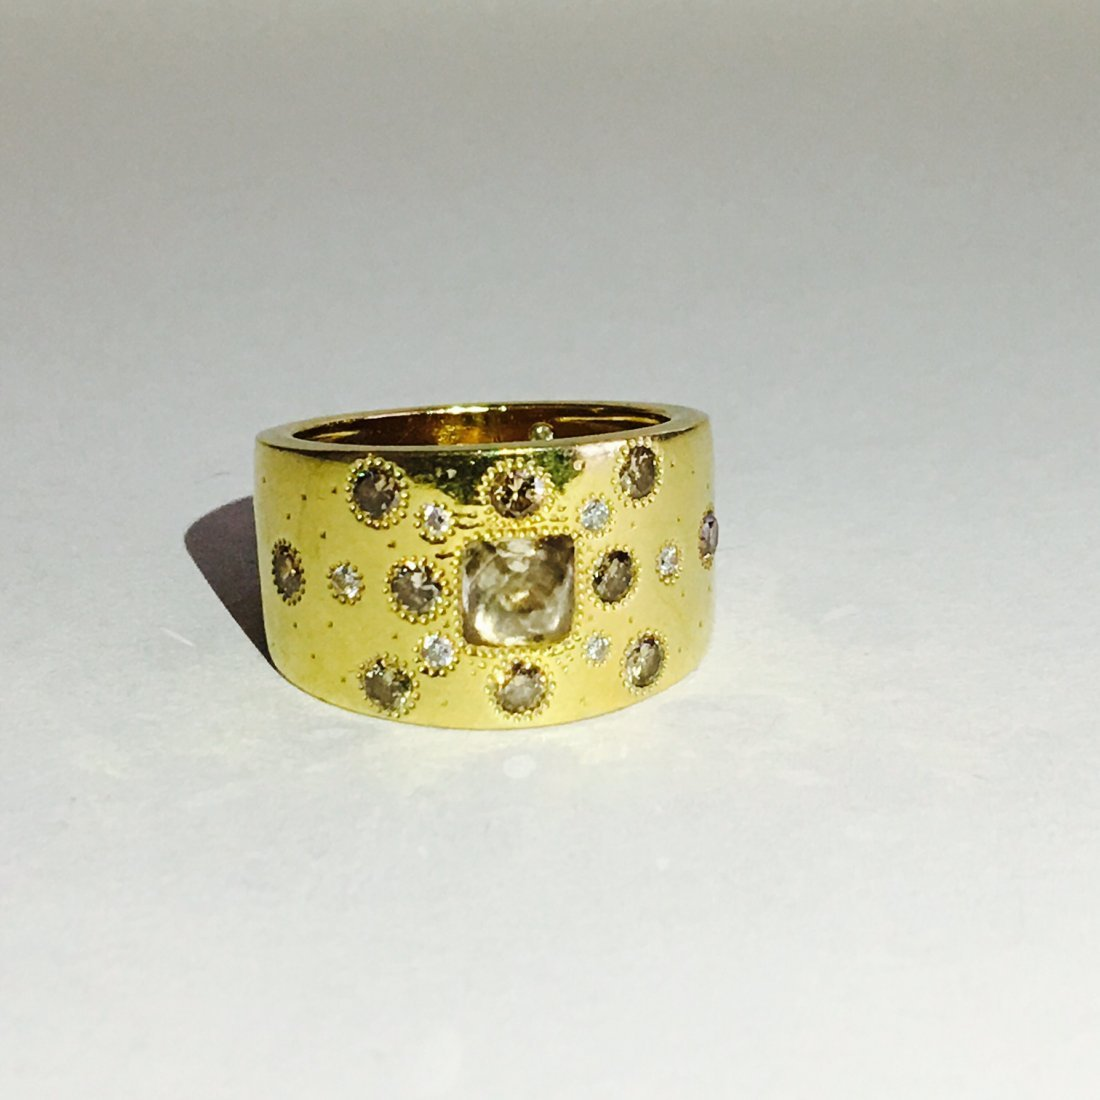 18k Gold ROUGH DIAMOND RING De beers Collection